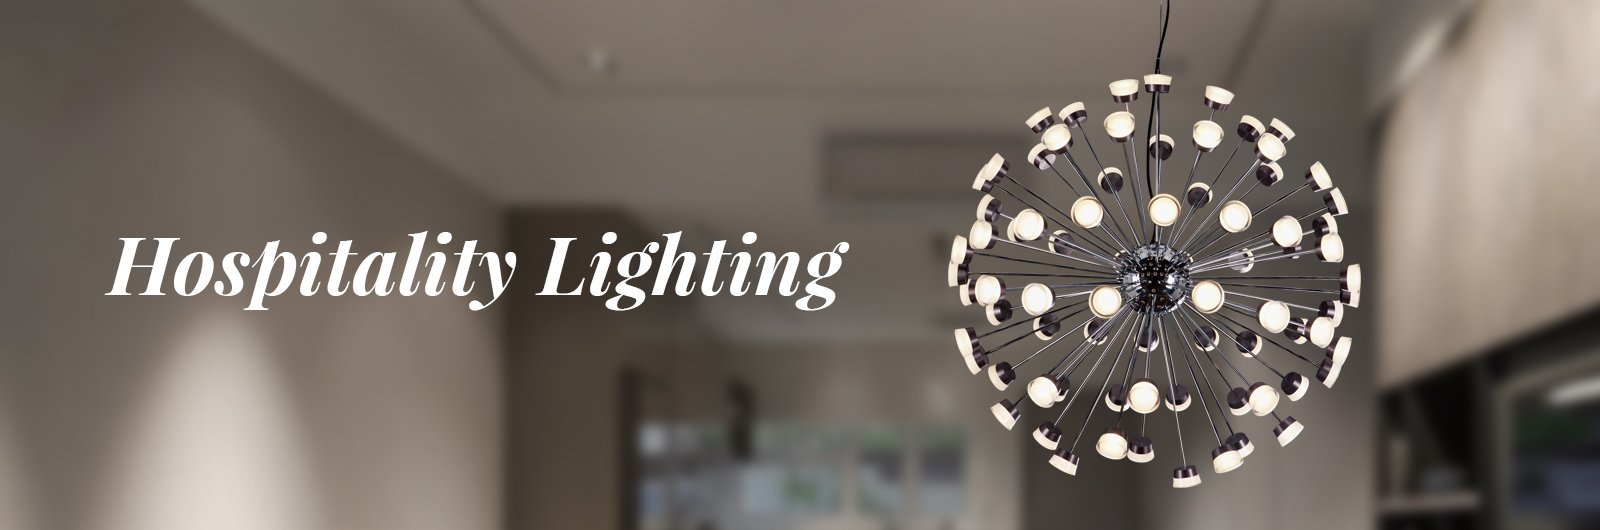 Lighting fixtures online decorative light supplier in canada modern lighting